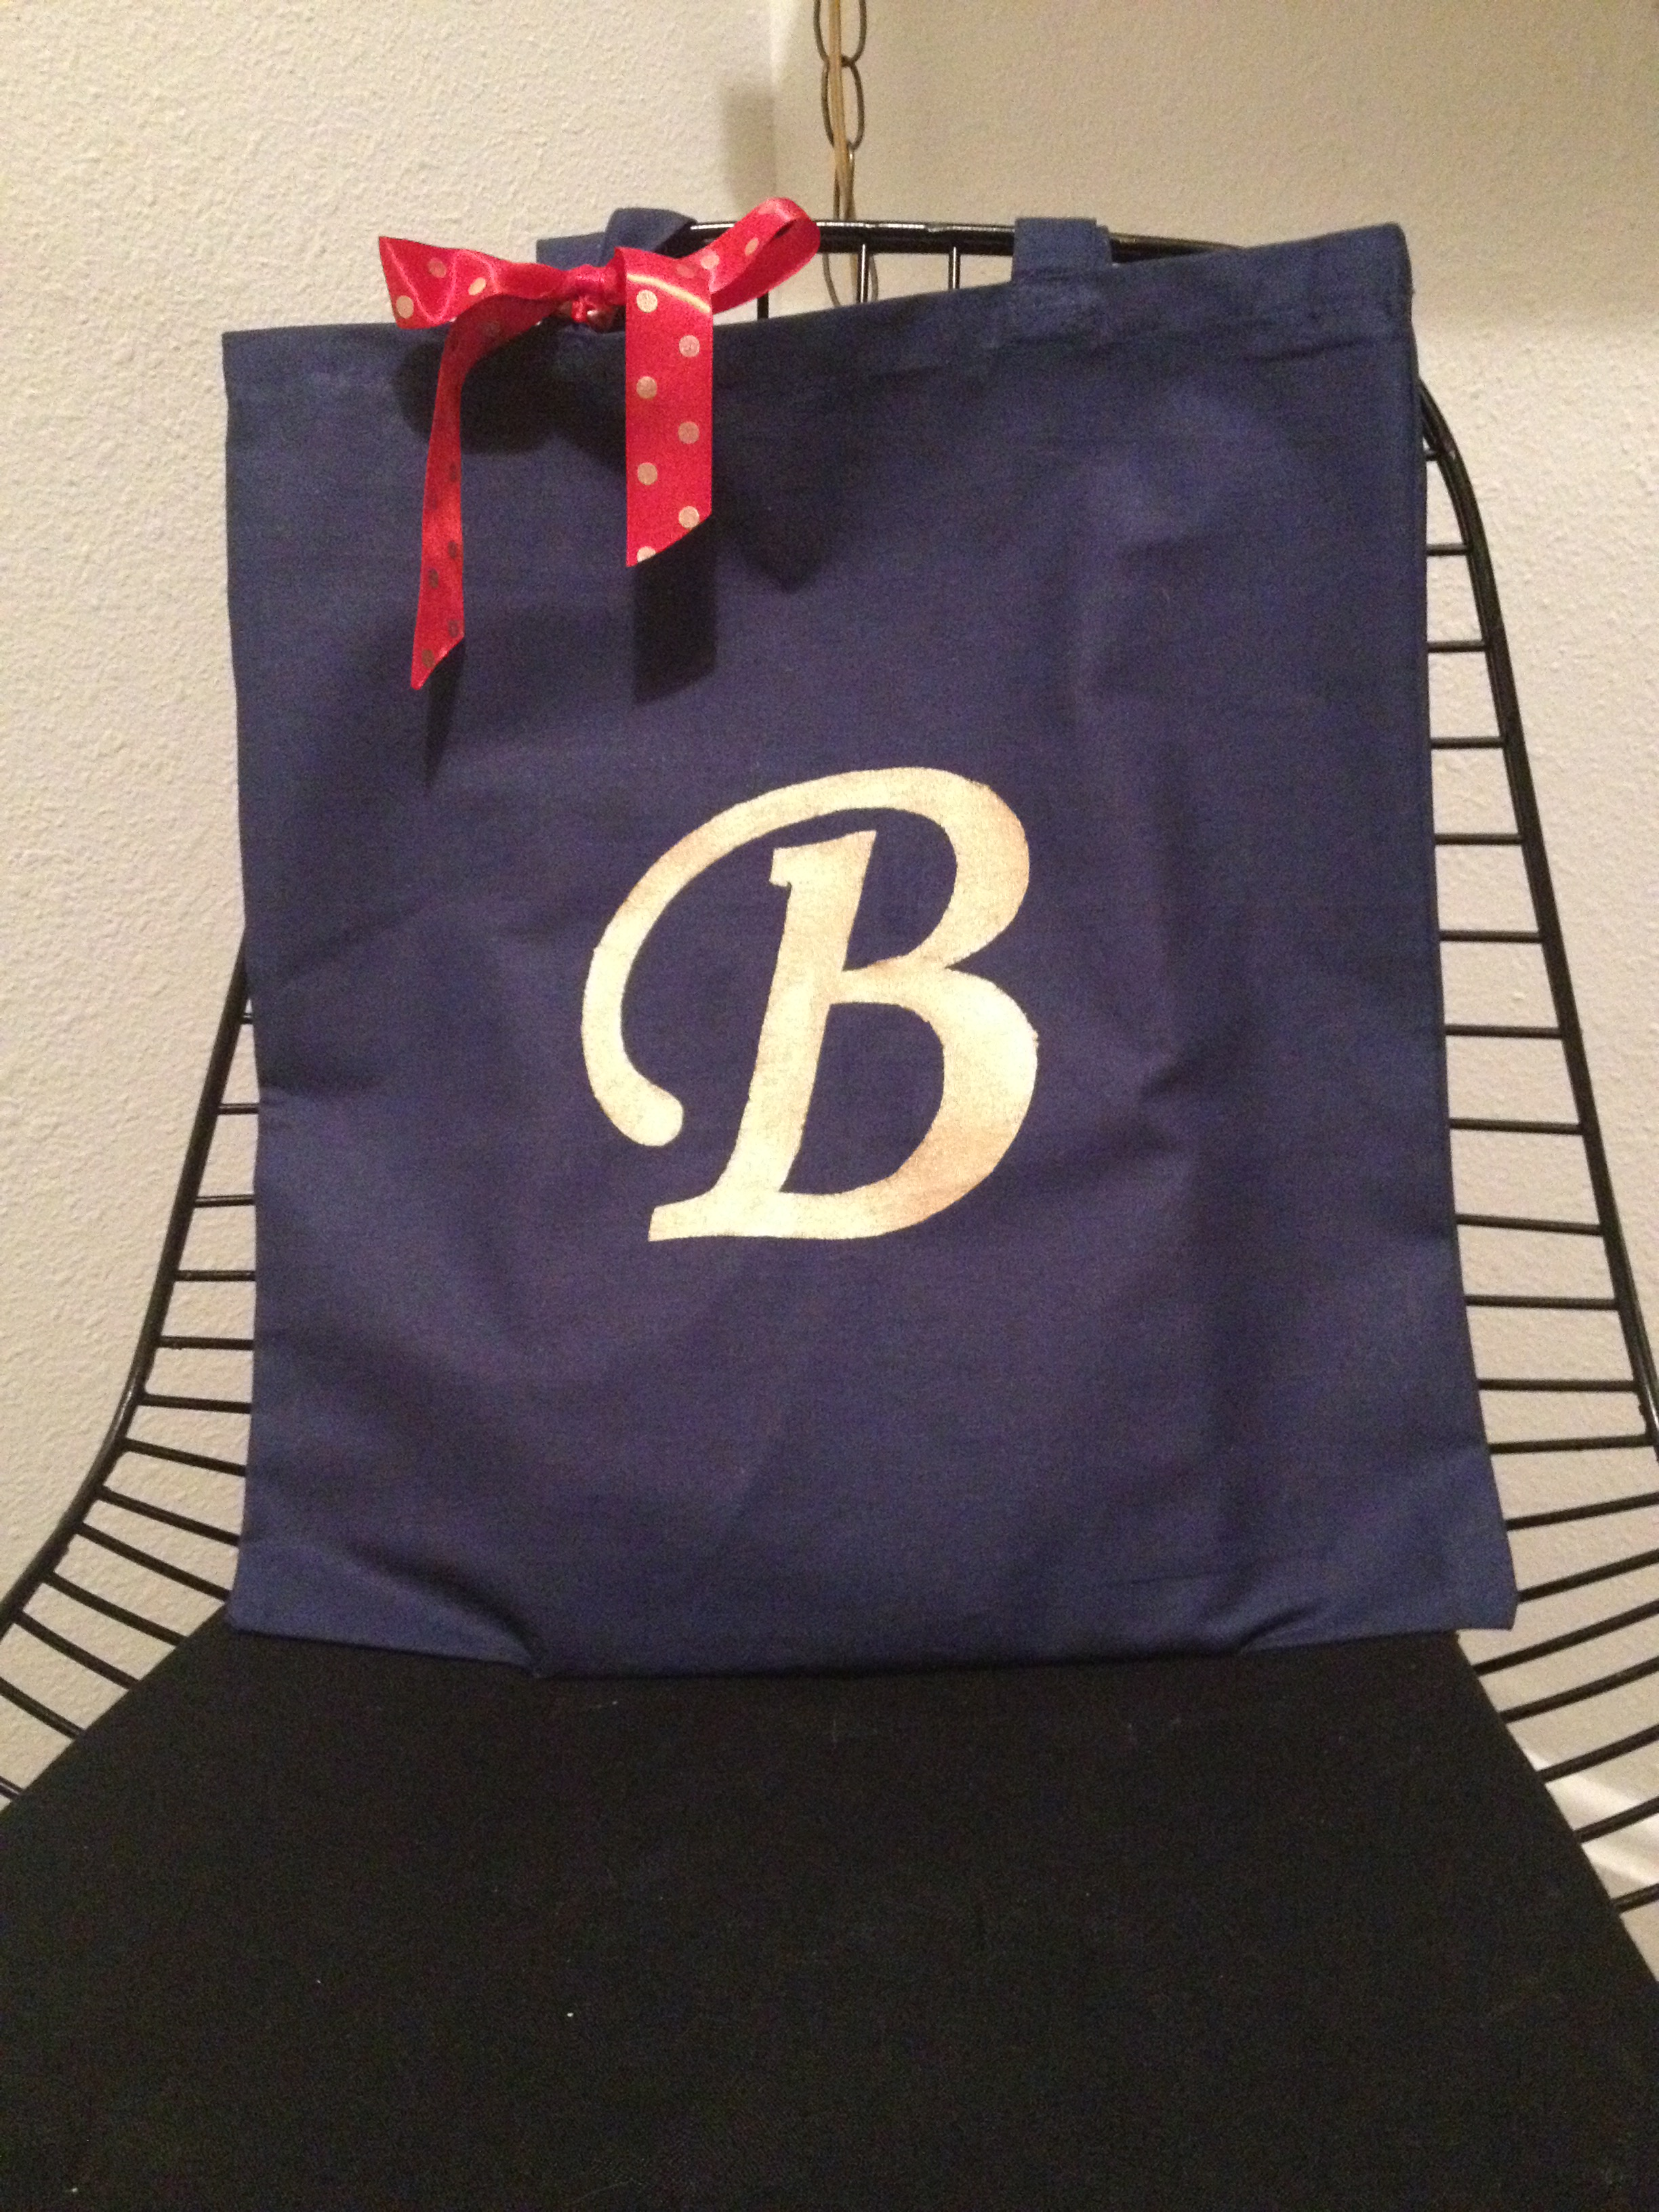 The Queen B Tote